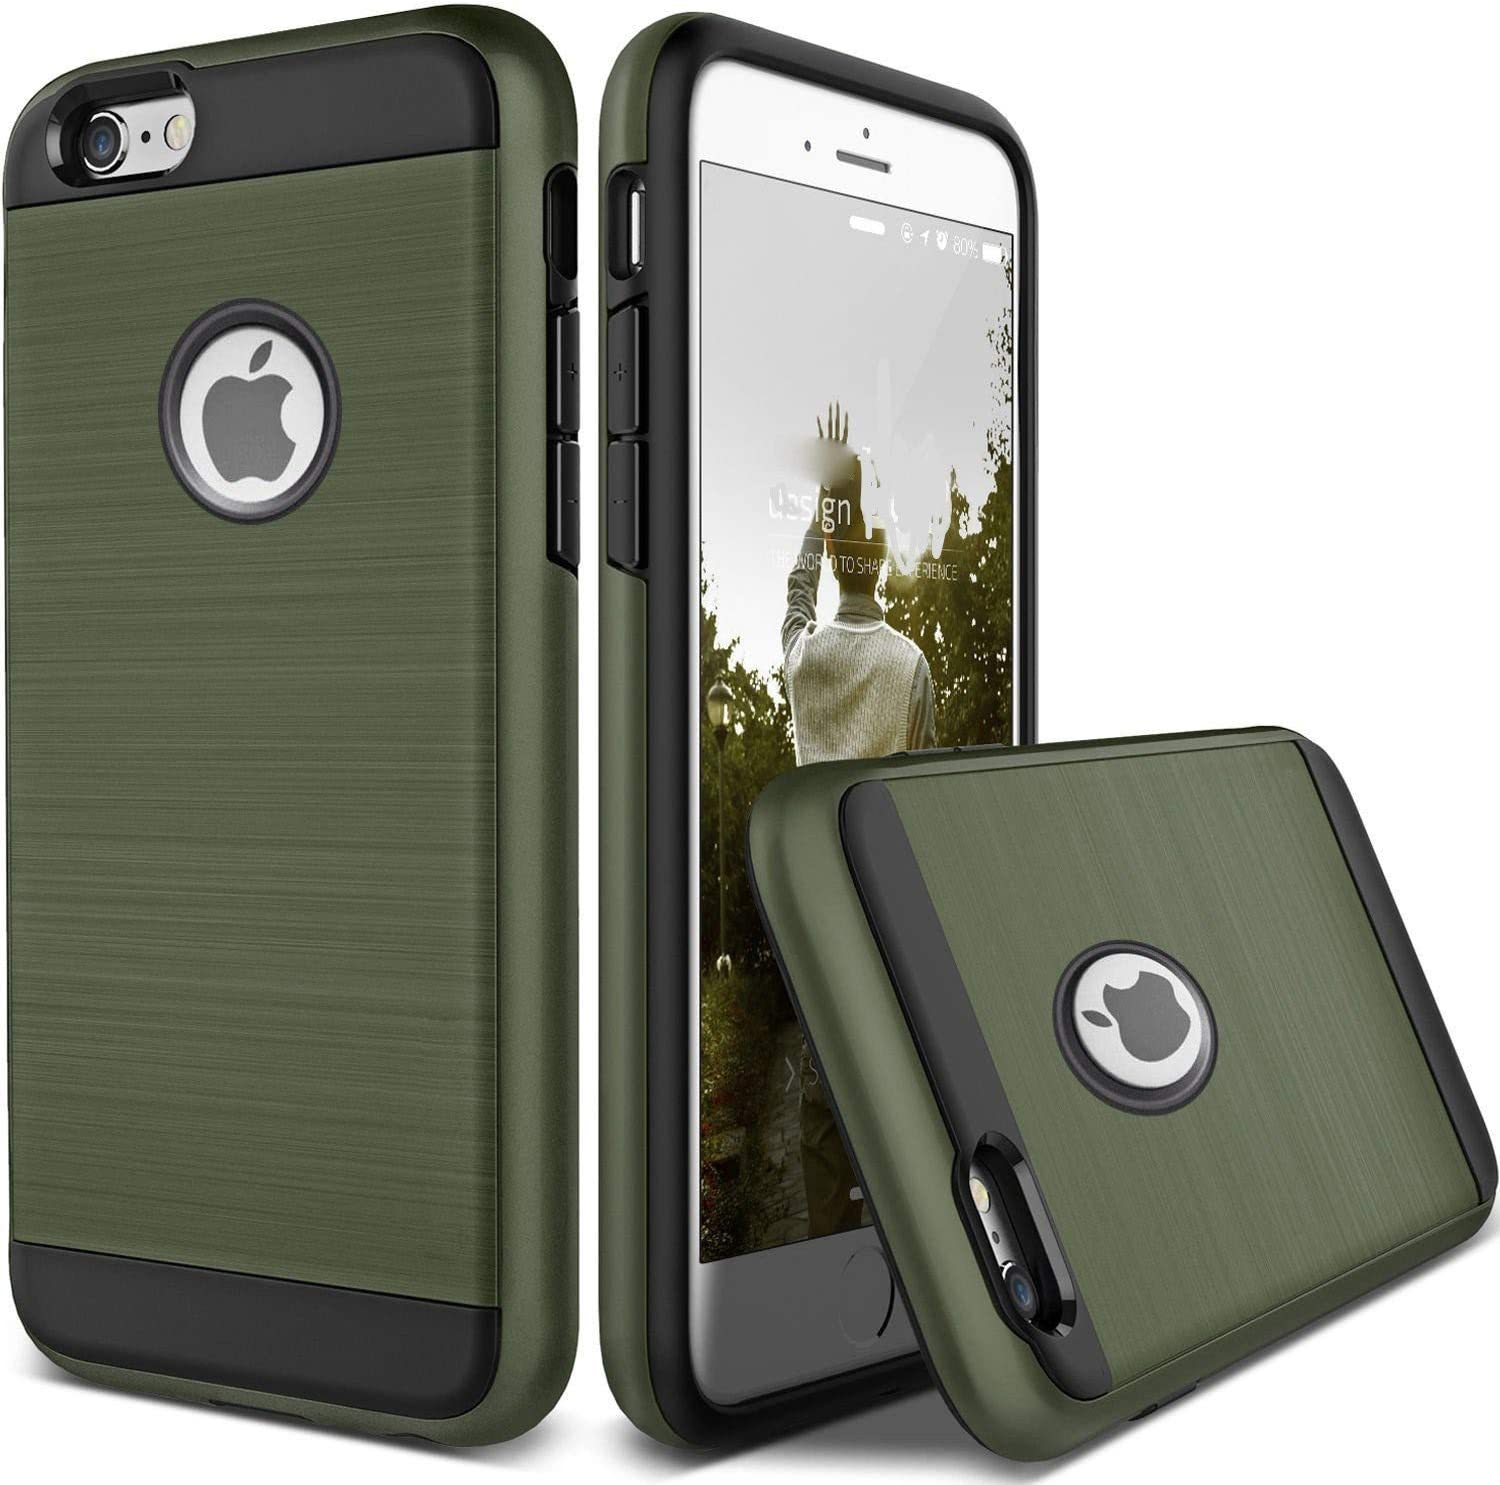 for Apple iPhone 12 11 X 8 7 6S 6 iphone8 Plus Case Shockproof Protective Armor Cover (Army Green, iPhone 8 Plus)